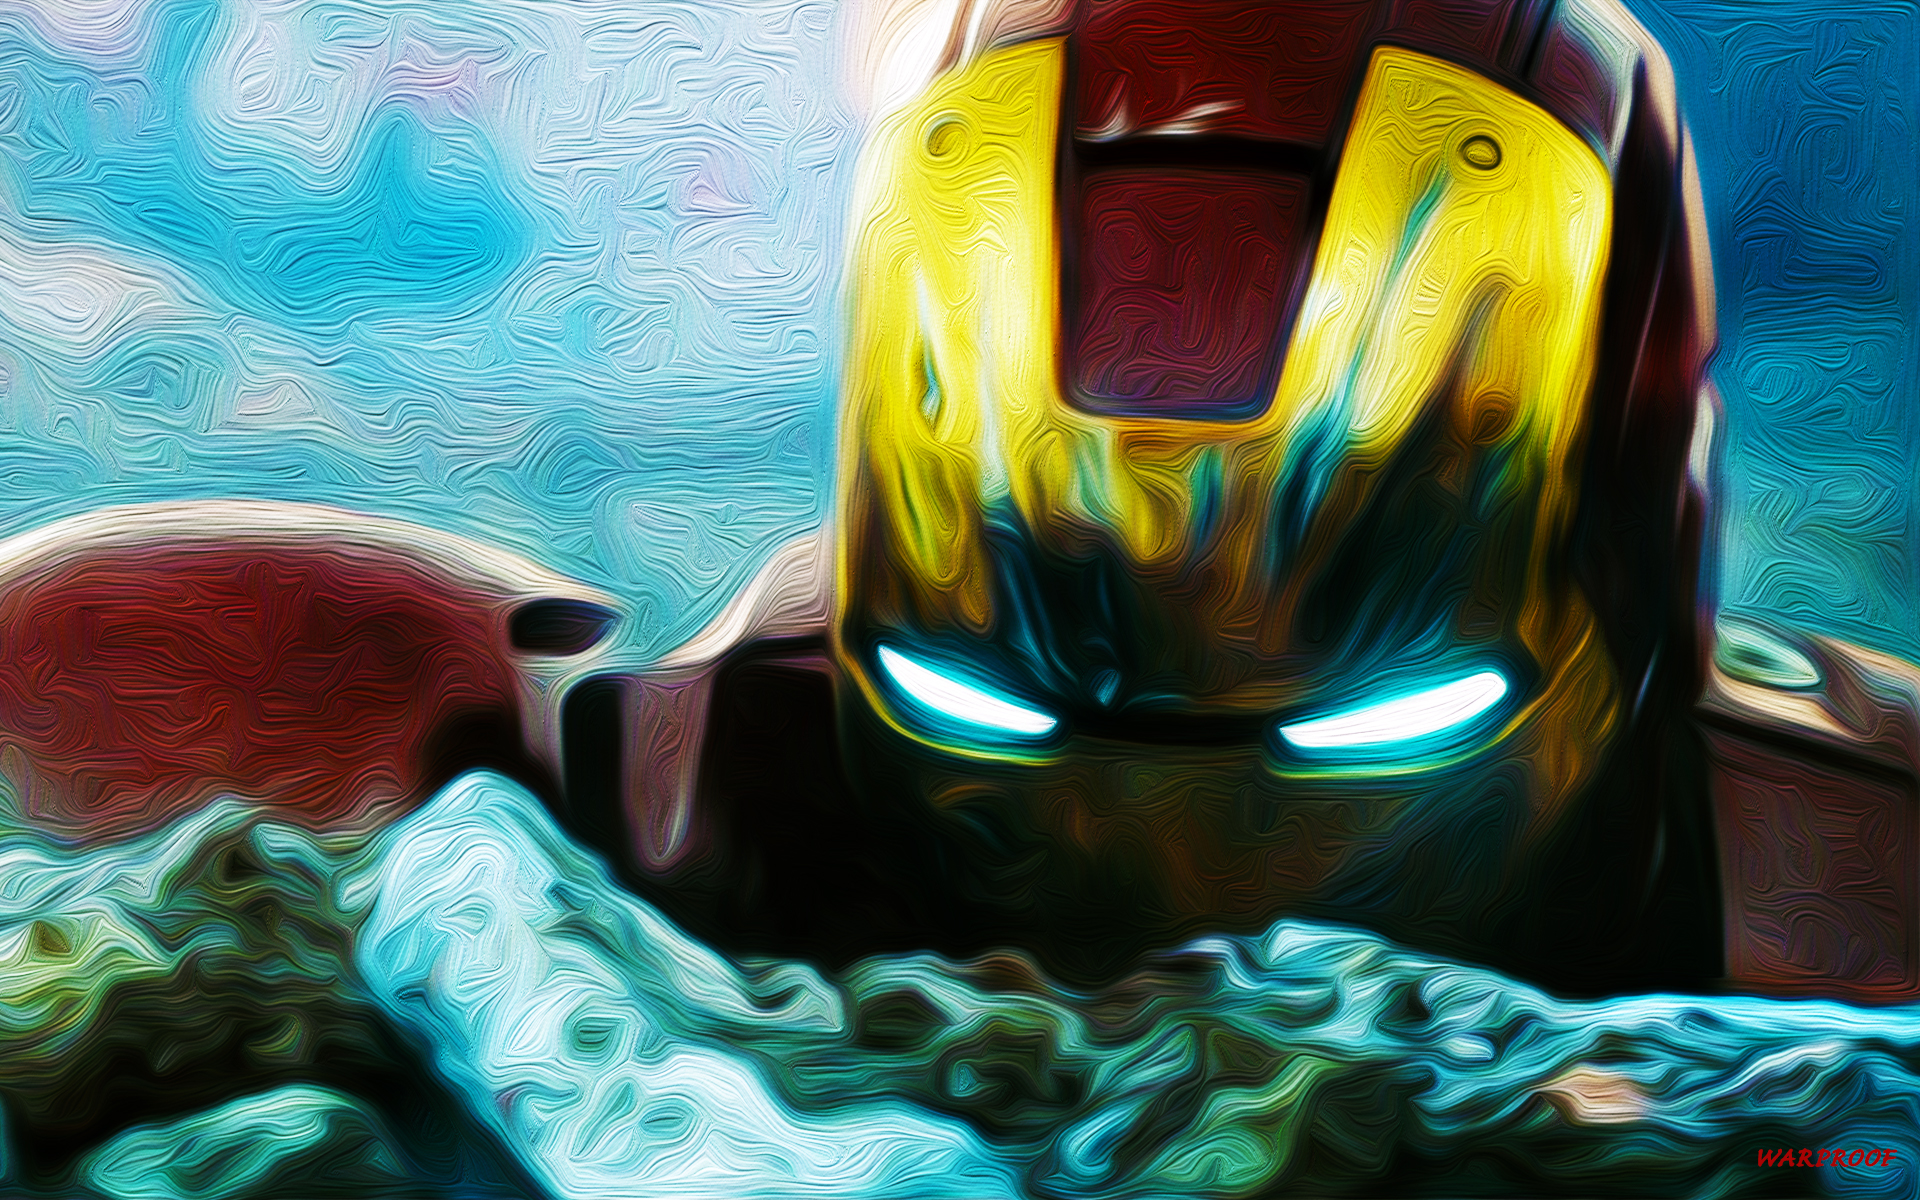 Iron man wallpapers pictures images - Man wallpaper ...